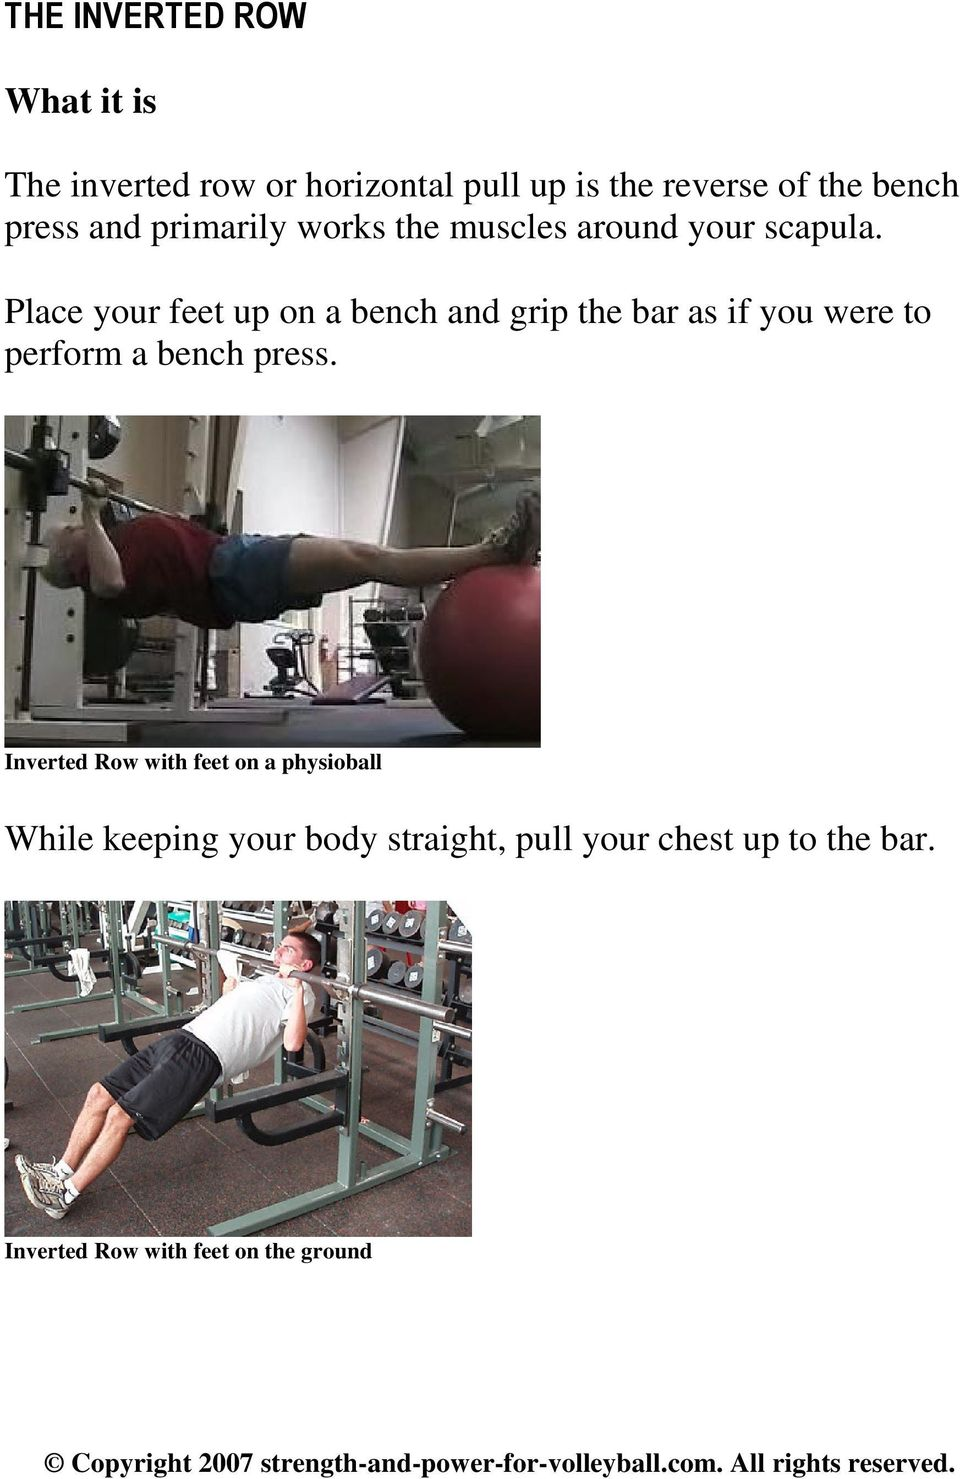 Place your feet up on a bench and grip the bar as if you were to perform a bench press.